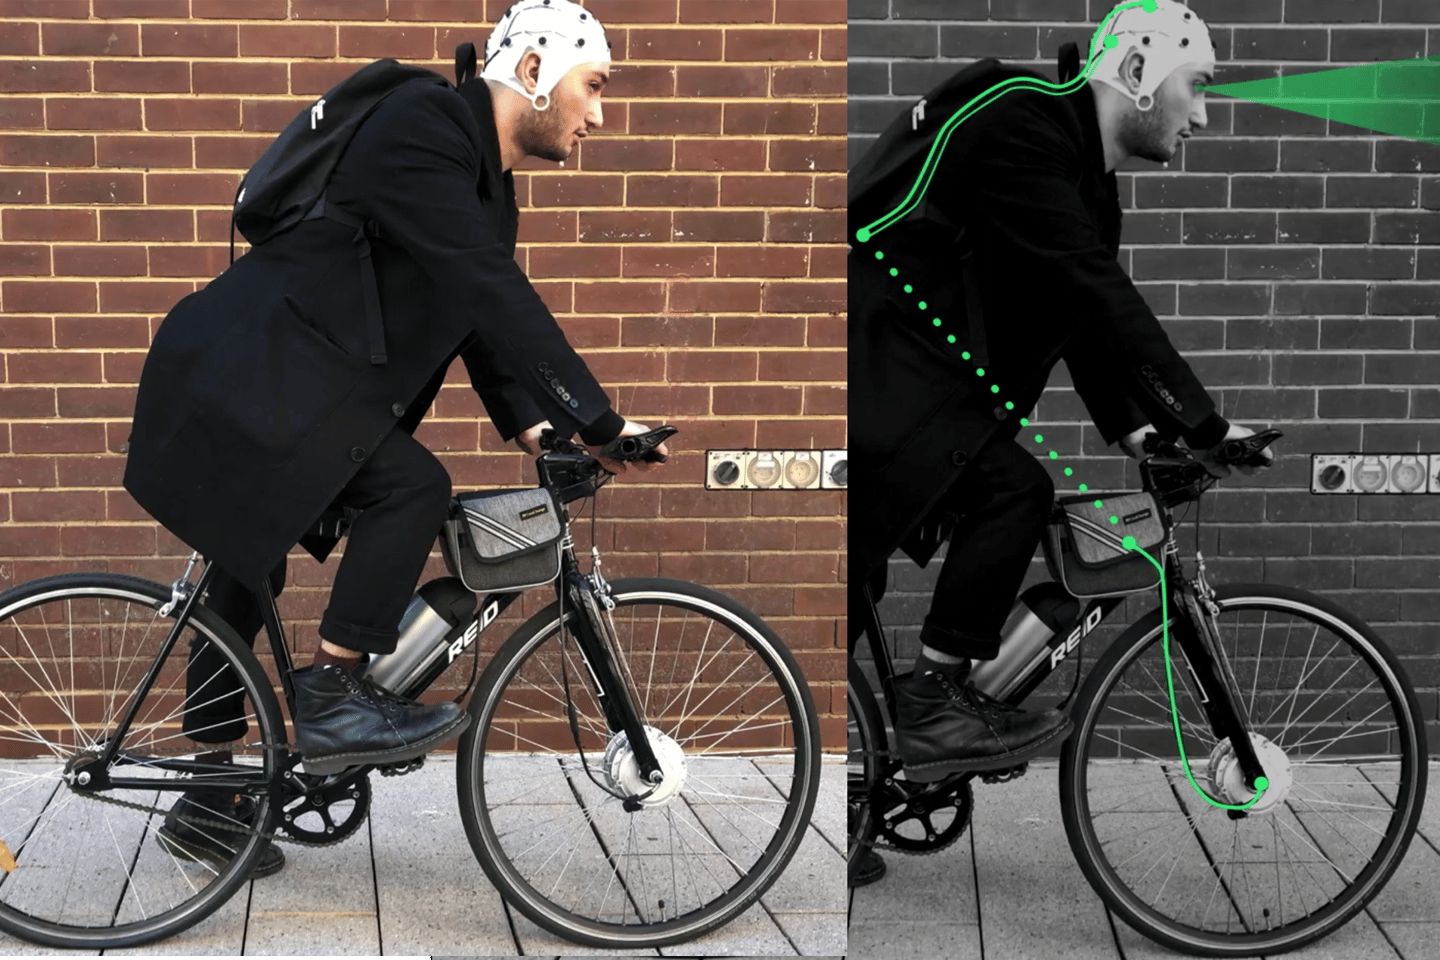 The Ena ebike reads your brain activity and hijacks your threat response system in the name of safety